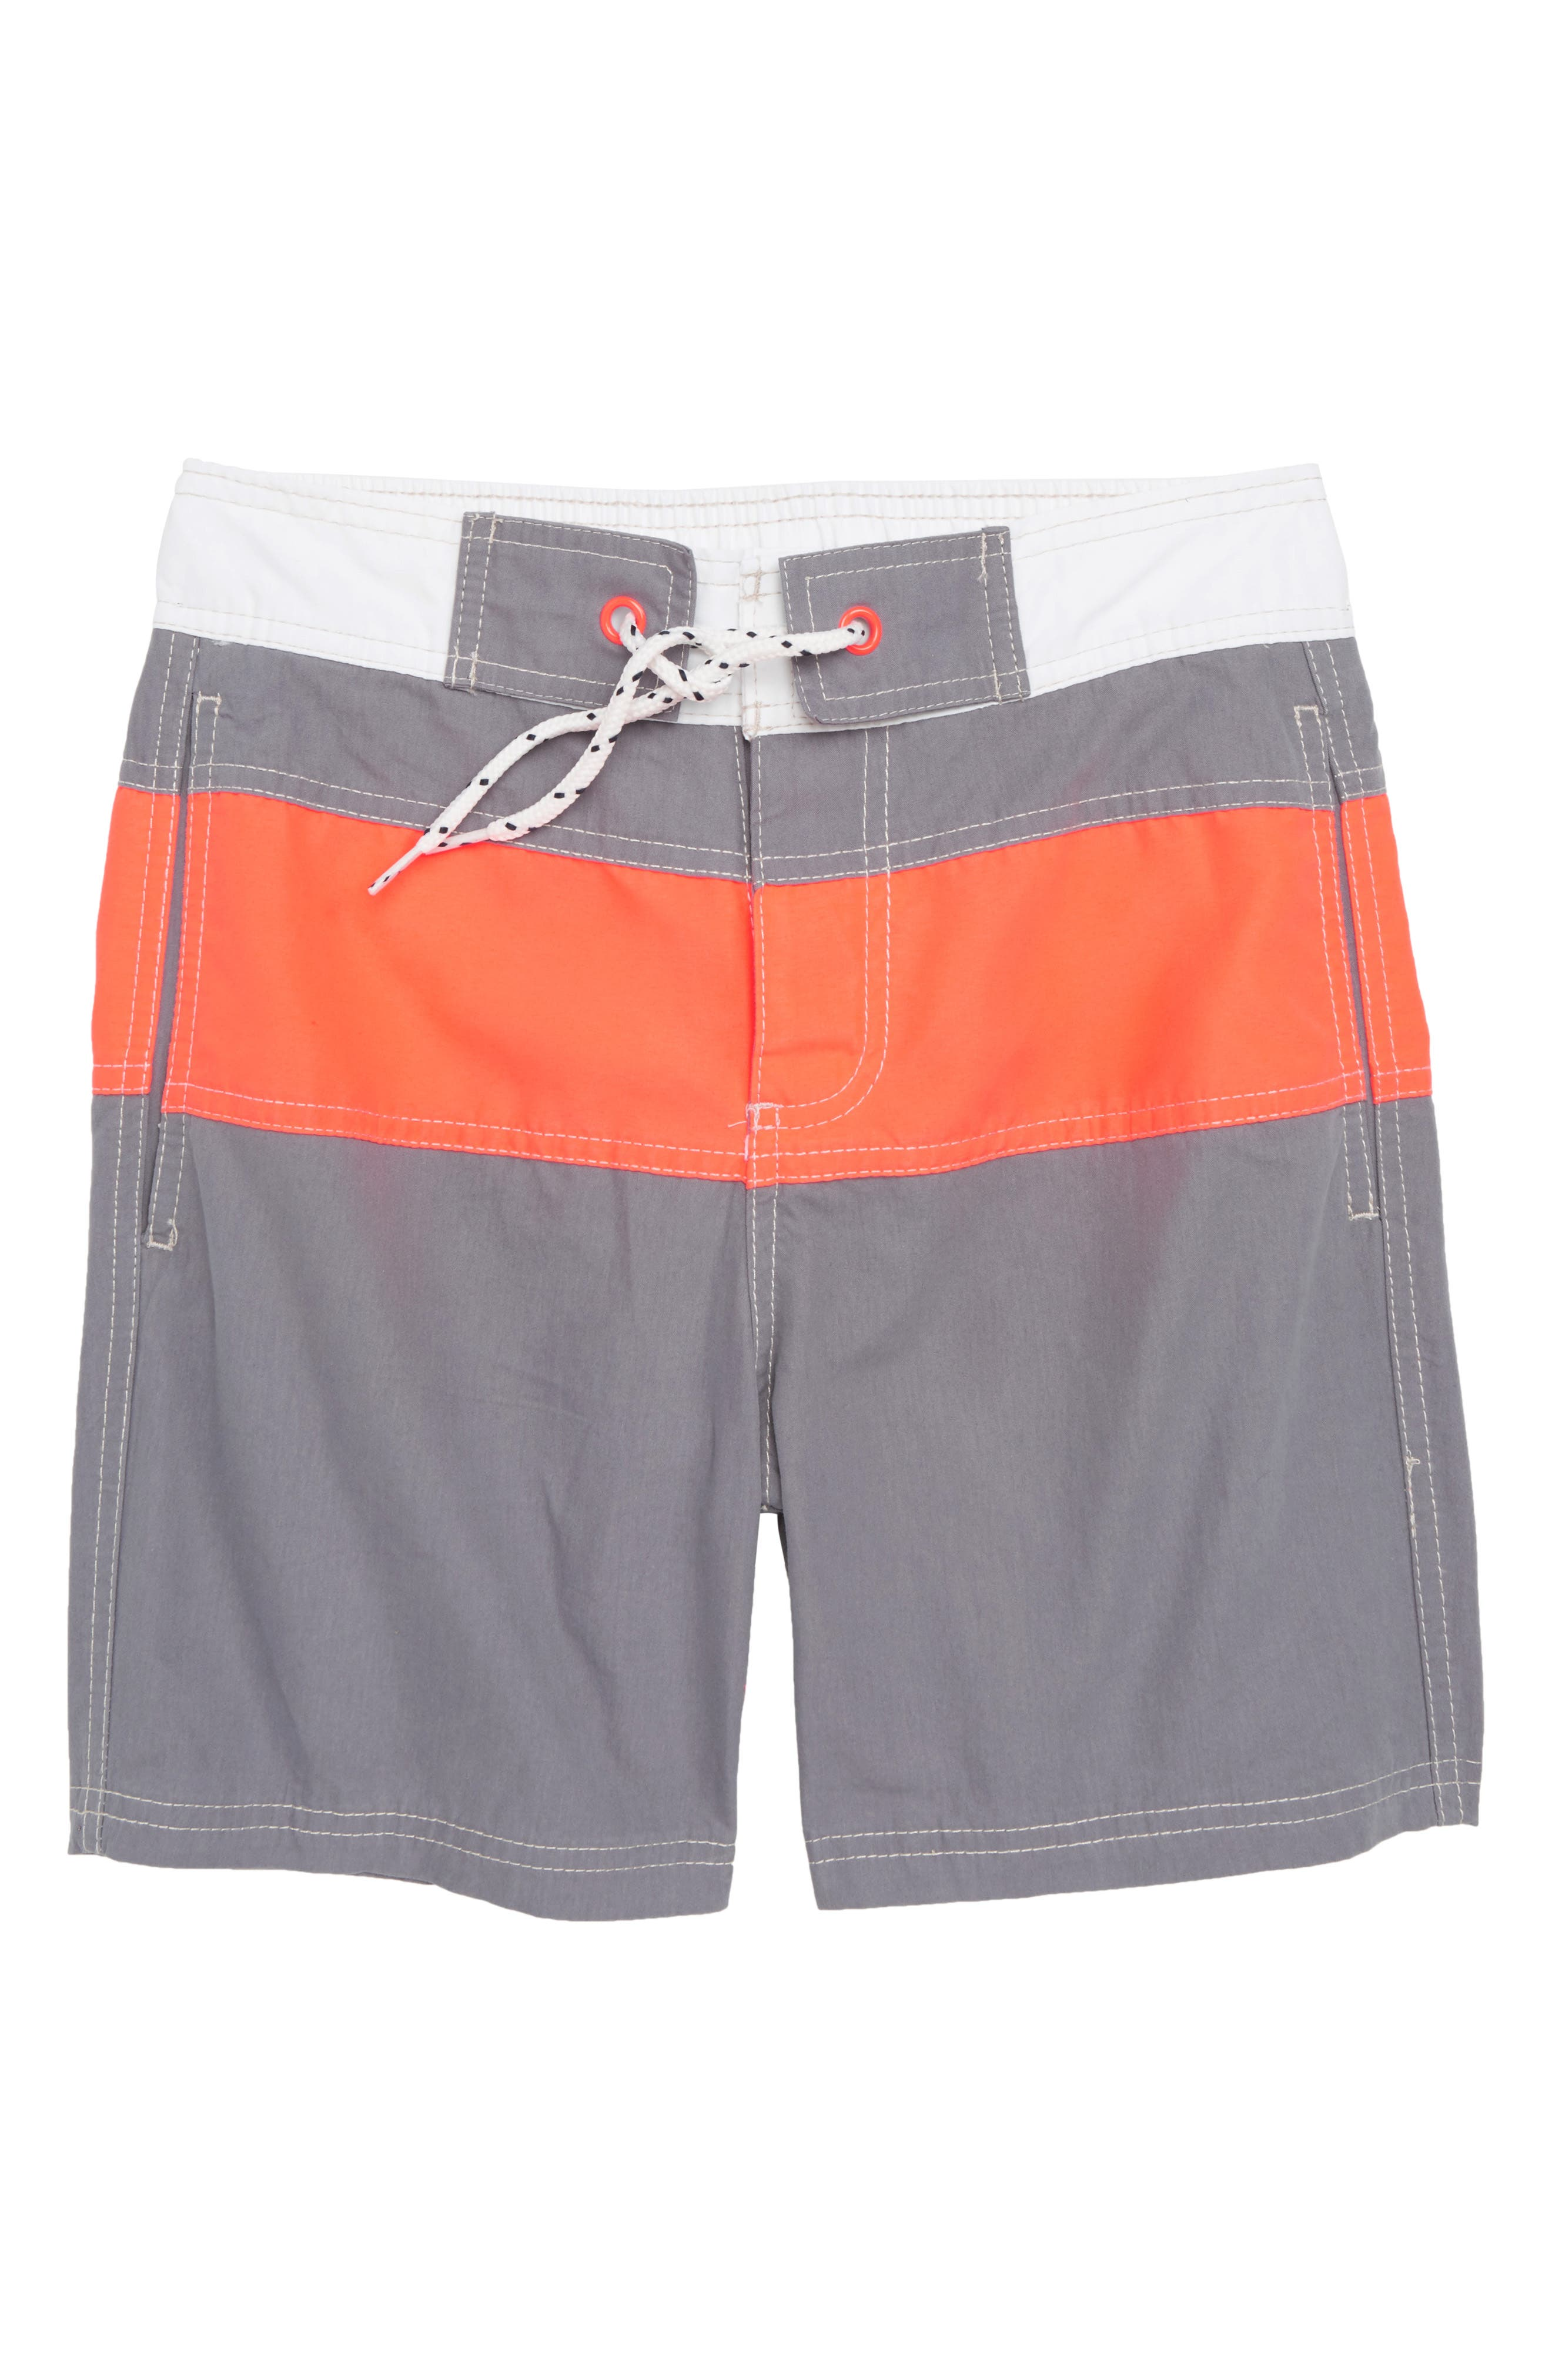 Poolside Swim Trunks,                             Main thumbnail 1, color,                             Raft Grey/ Fiery Coral Red